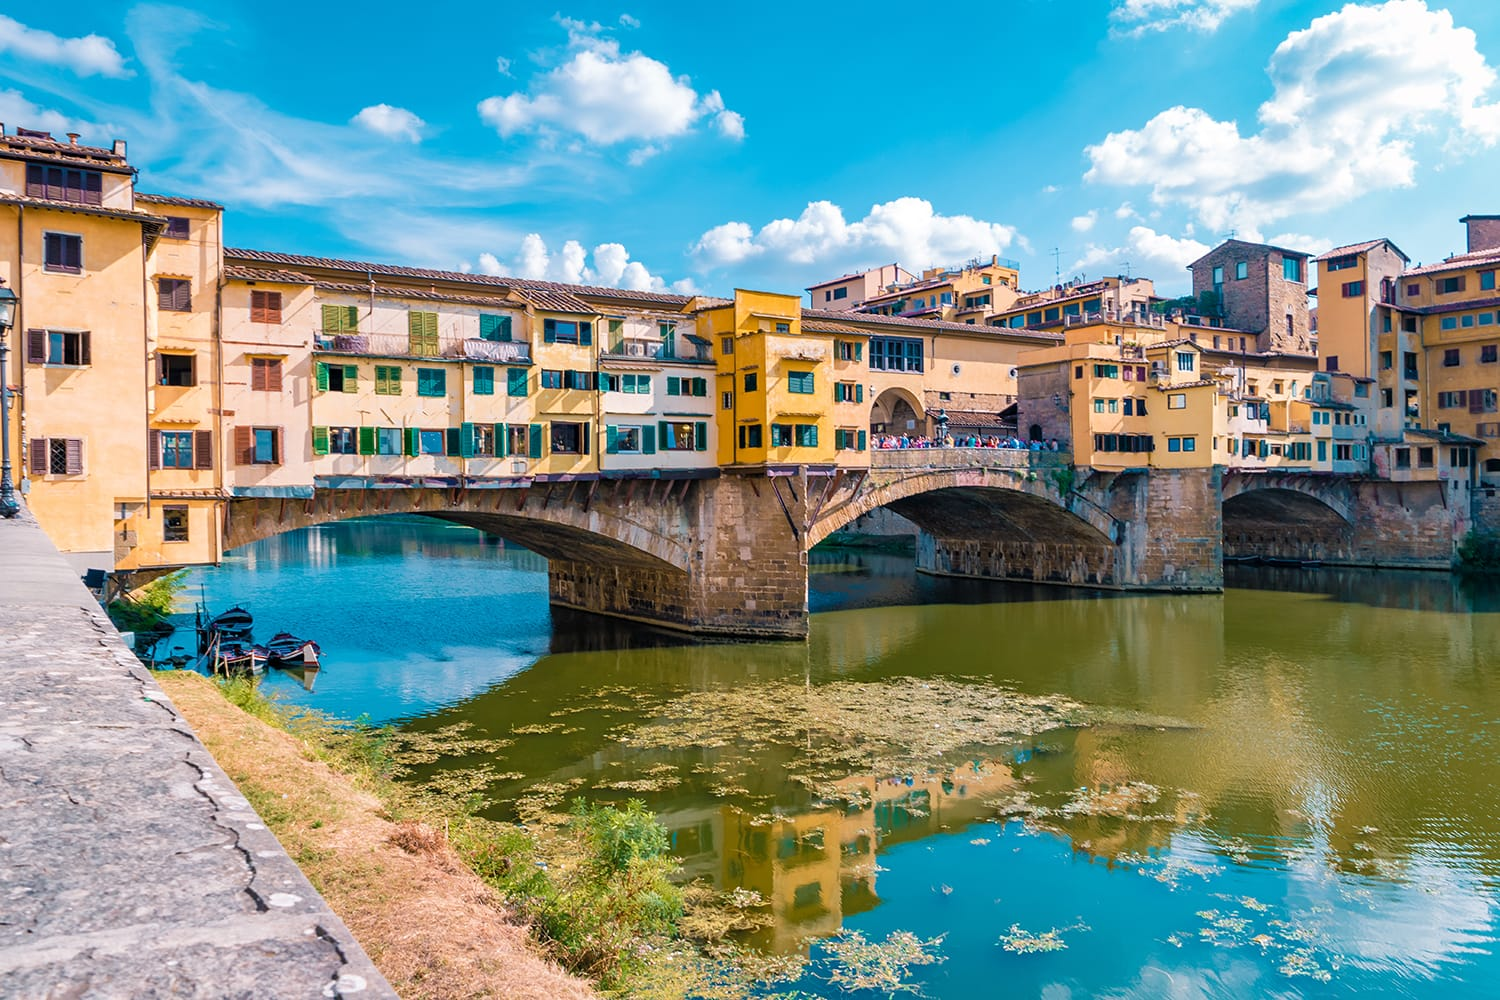 Ponte Vecchio bridge over the Arno River in Florence Italiy